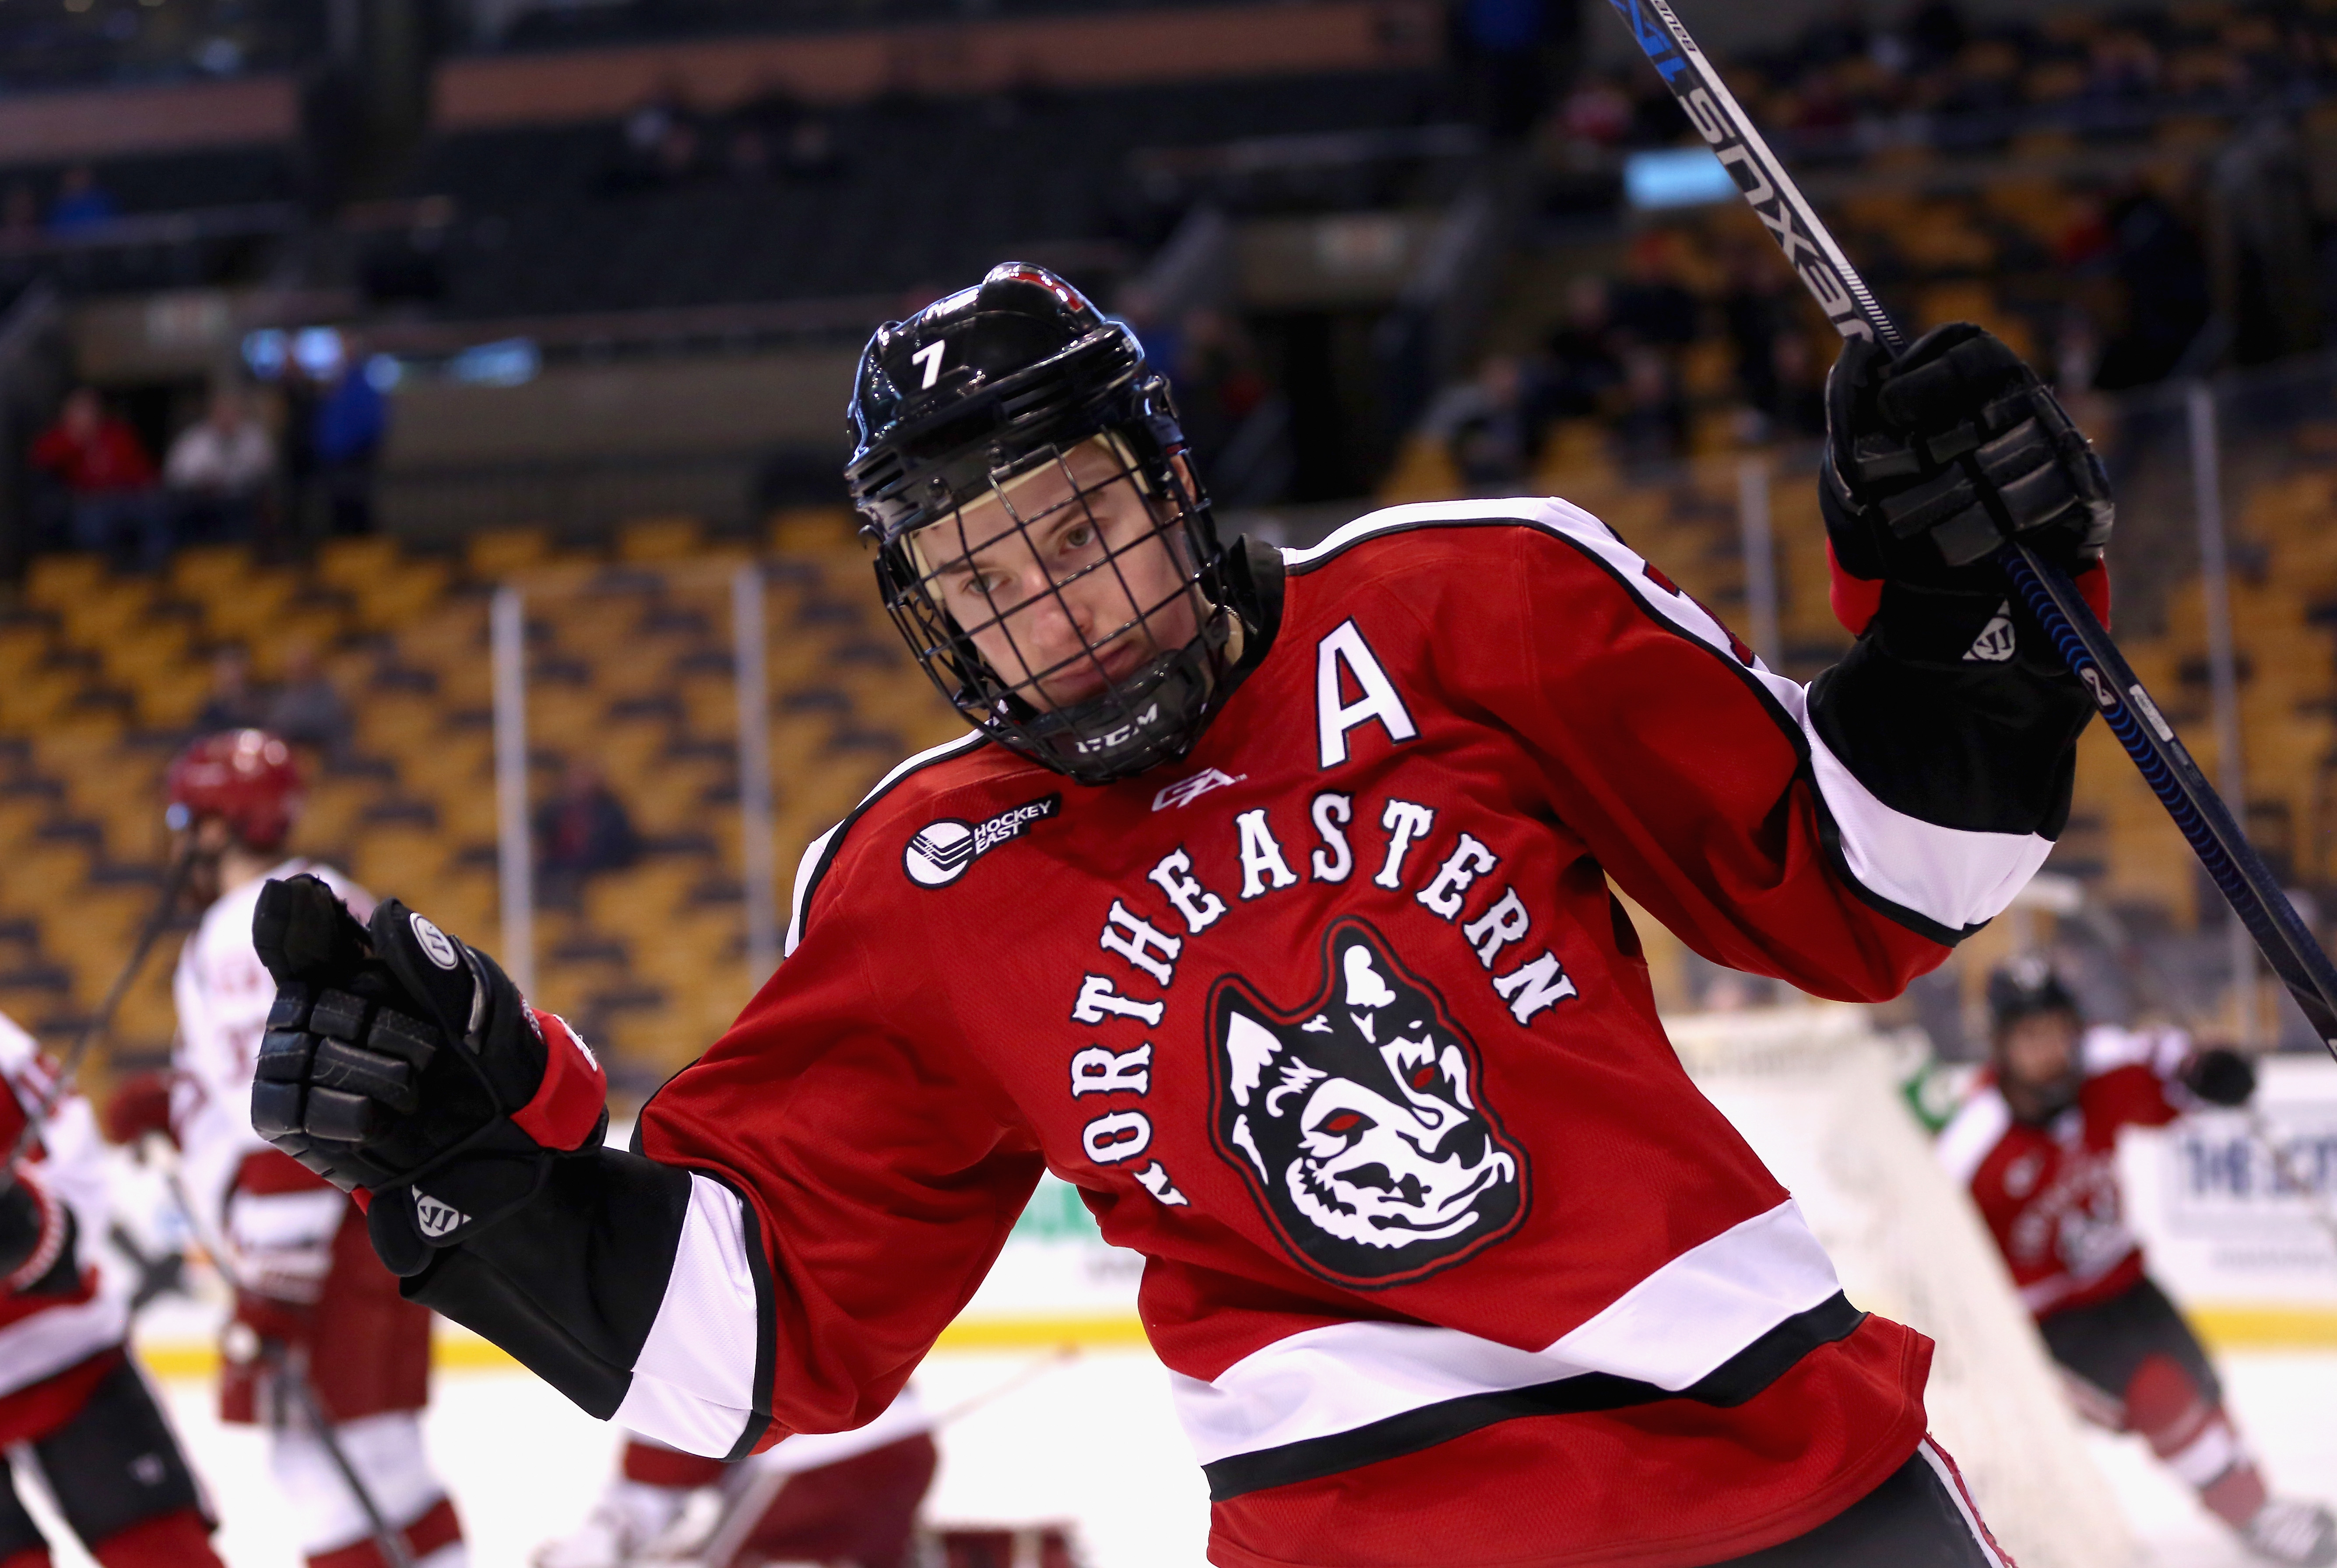 Hockey East: Playoffs Race - What We Know, What We Don't Know